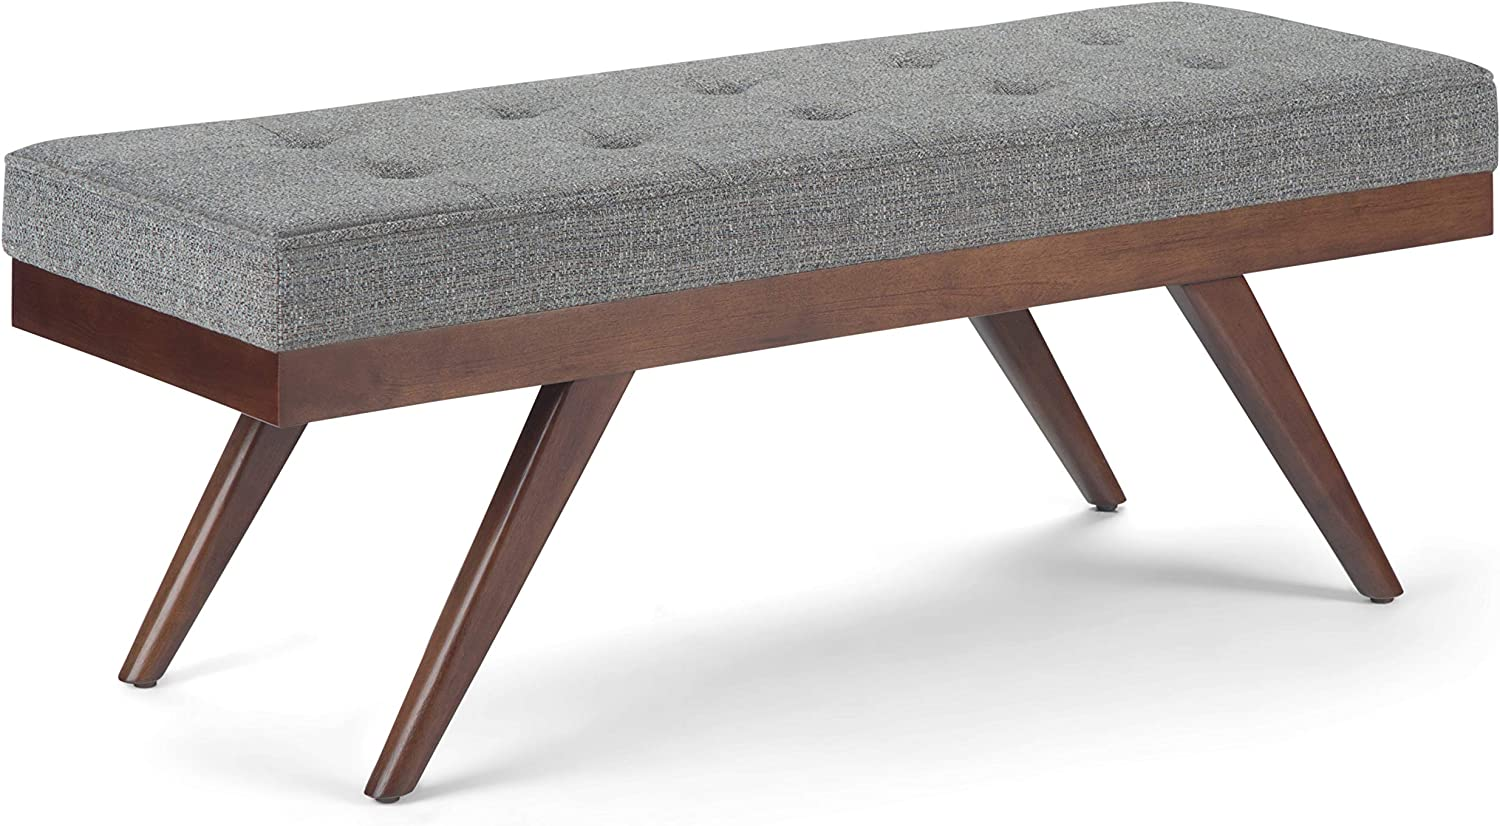 Simpli Home Pierce 48 inch Wide Mid Century Modern Rectangle Ottoman Bench in Pebble Grey Tweed Fabric